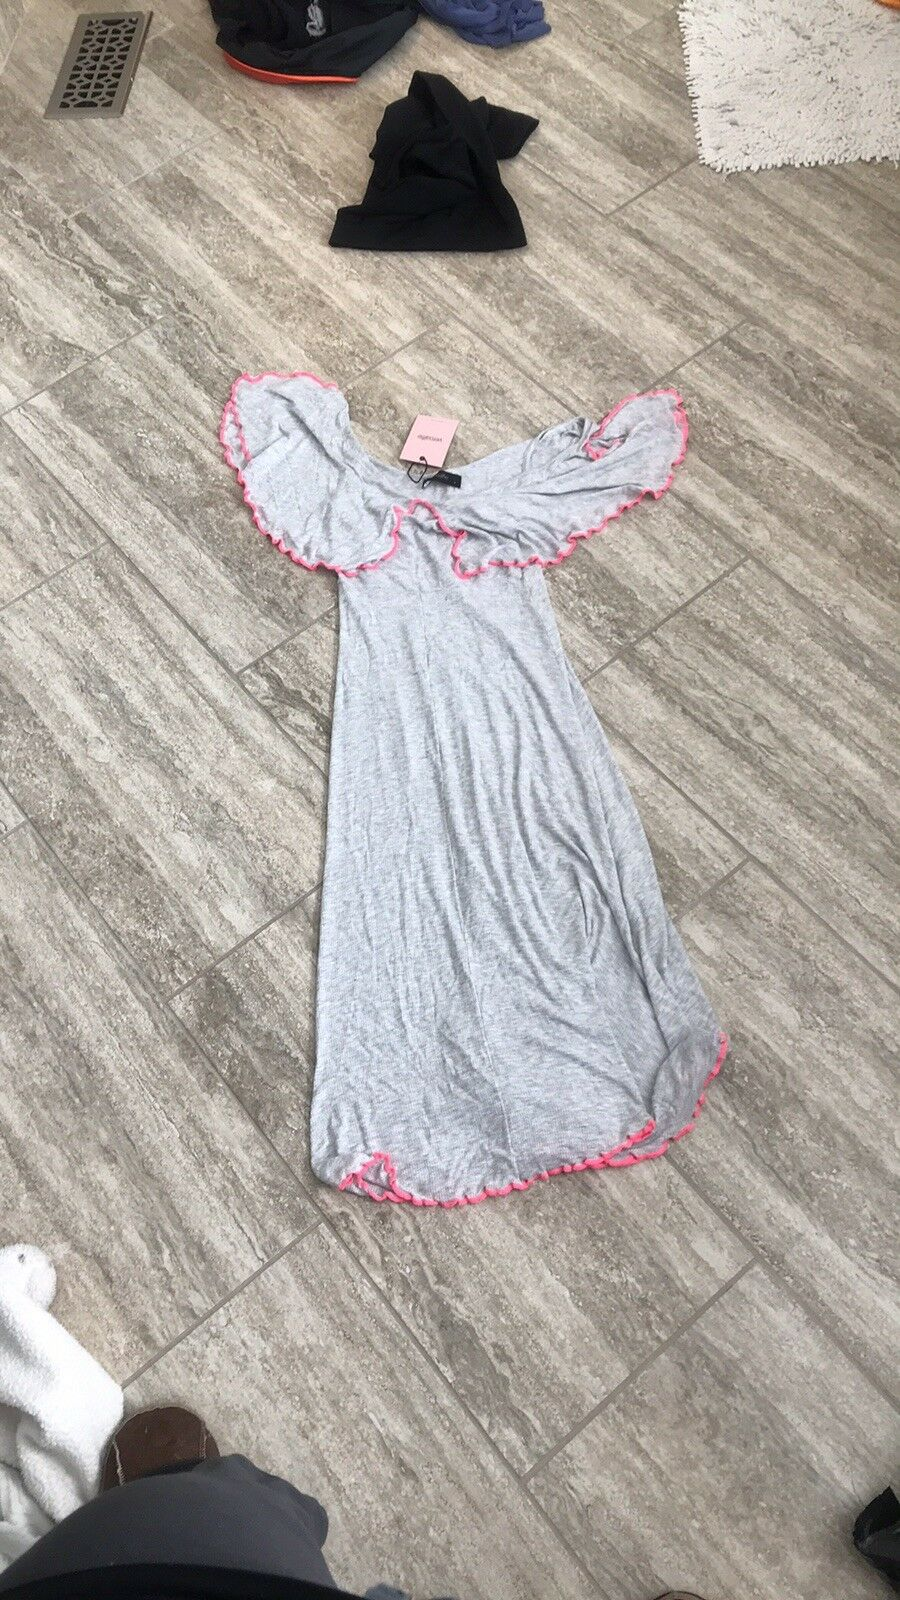 NWT  178 Anthropologie Veroalfie Dress Sz 2 Grey With Hot pink Accents